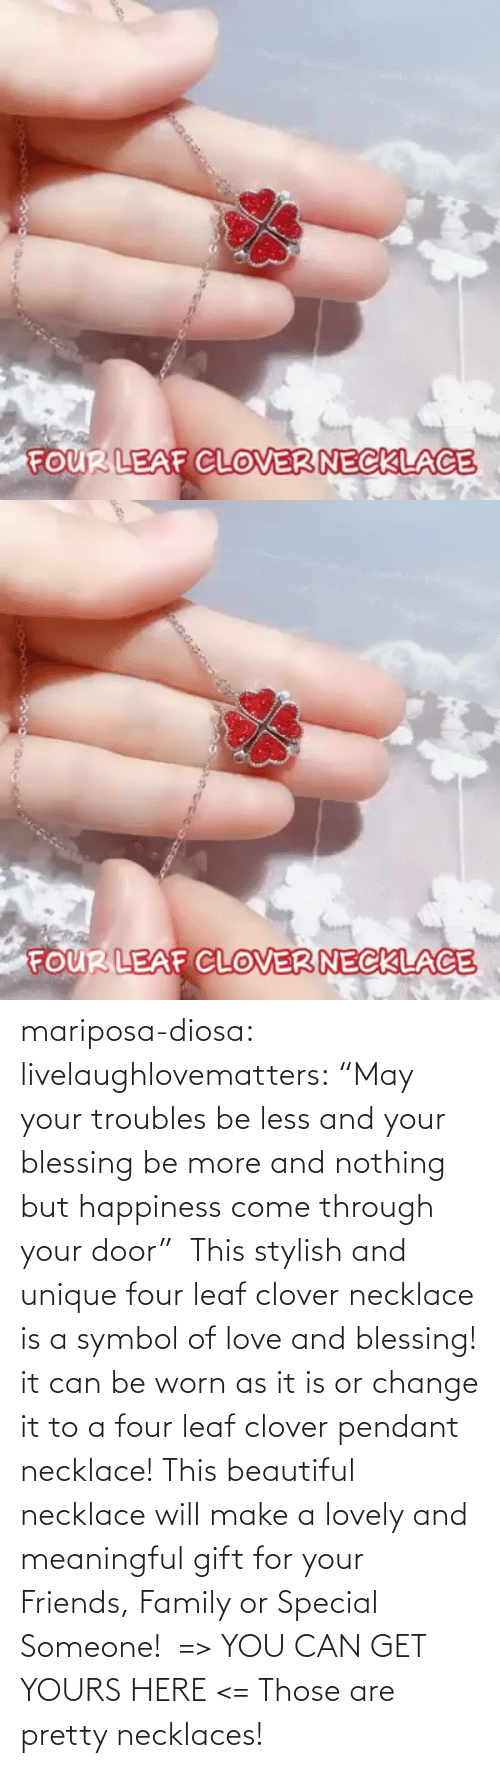 "Change: mariposa-diosa: livelaughlovematters:  ""May your troubles be less and your blessing be more and nothing but happiness come through your door""  This stylish and unique four leaf clover necklace is a symbol of love and blessing! it can be worn as it is or change it to a four leaf clover pendant necklace! This beautiful necklace will make a lovely and meaningful gift for your Friends, Family or Special Someone!  => YOU CAN GET YOURS HERE <=    Those are pretty necklaces!"